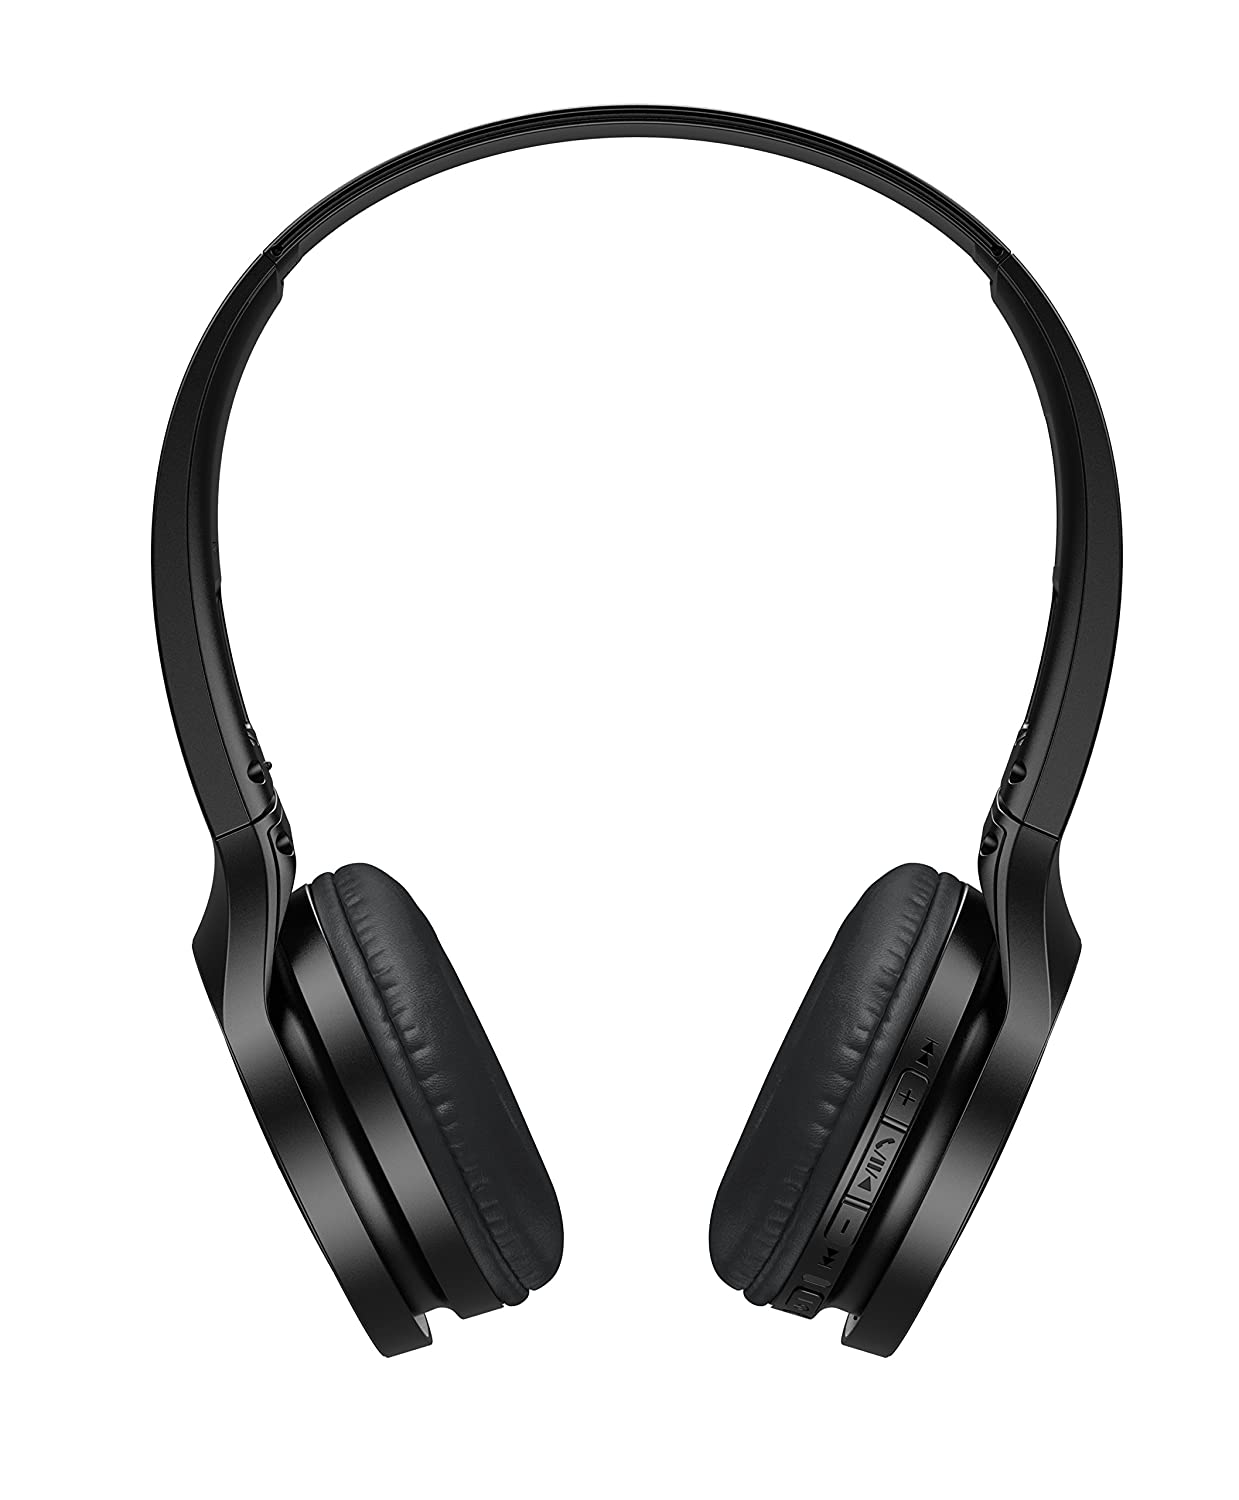 Panasonic RP-HF400BE-K Headphones